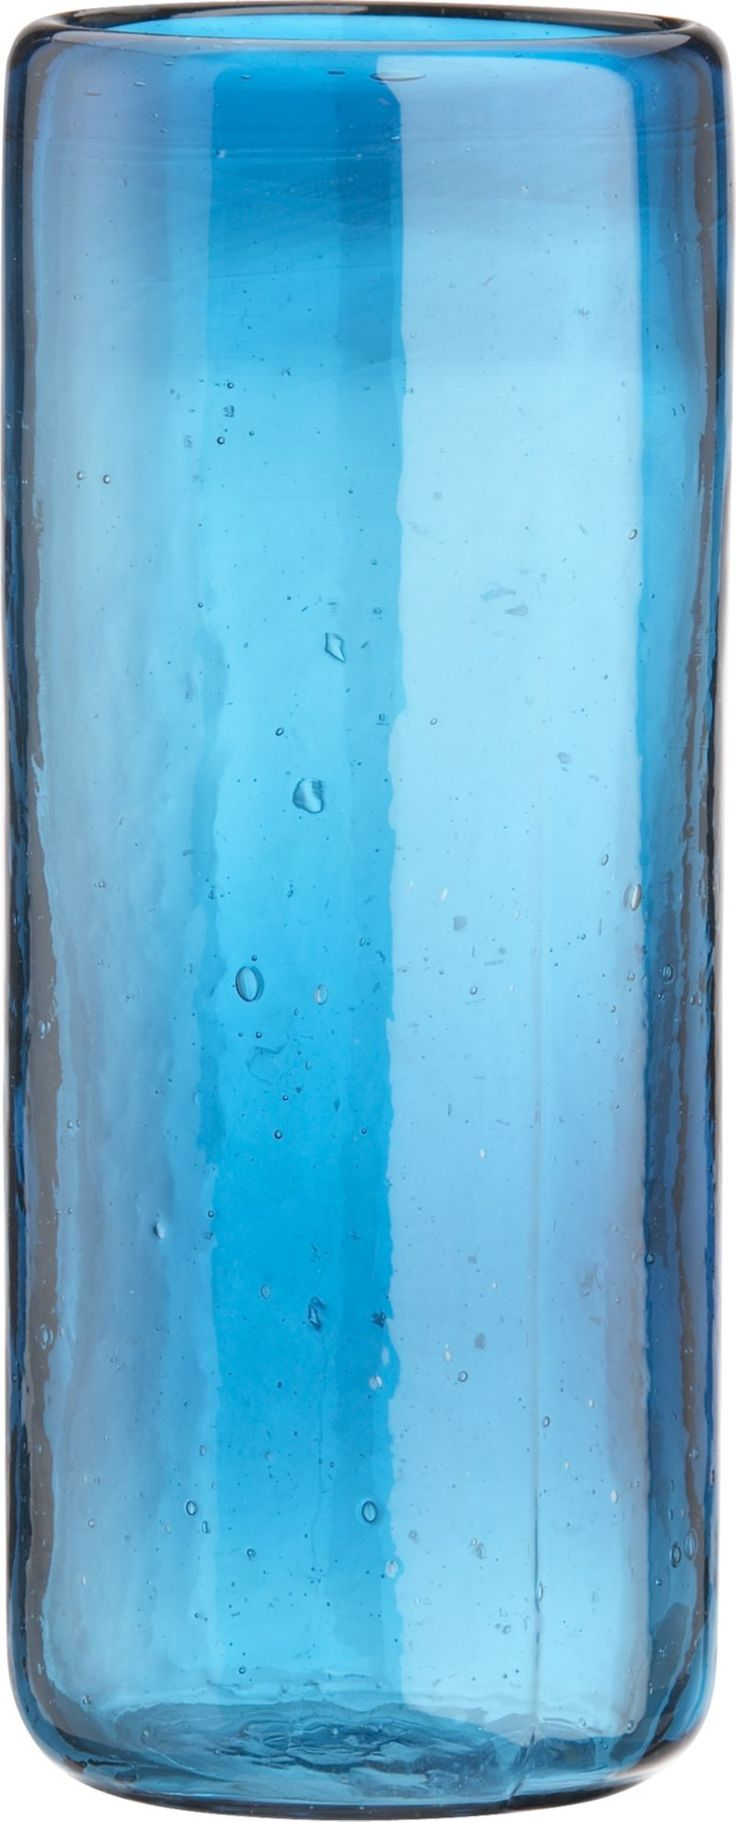 Salud Tall Drink Glass  | Crate and Barrel